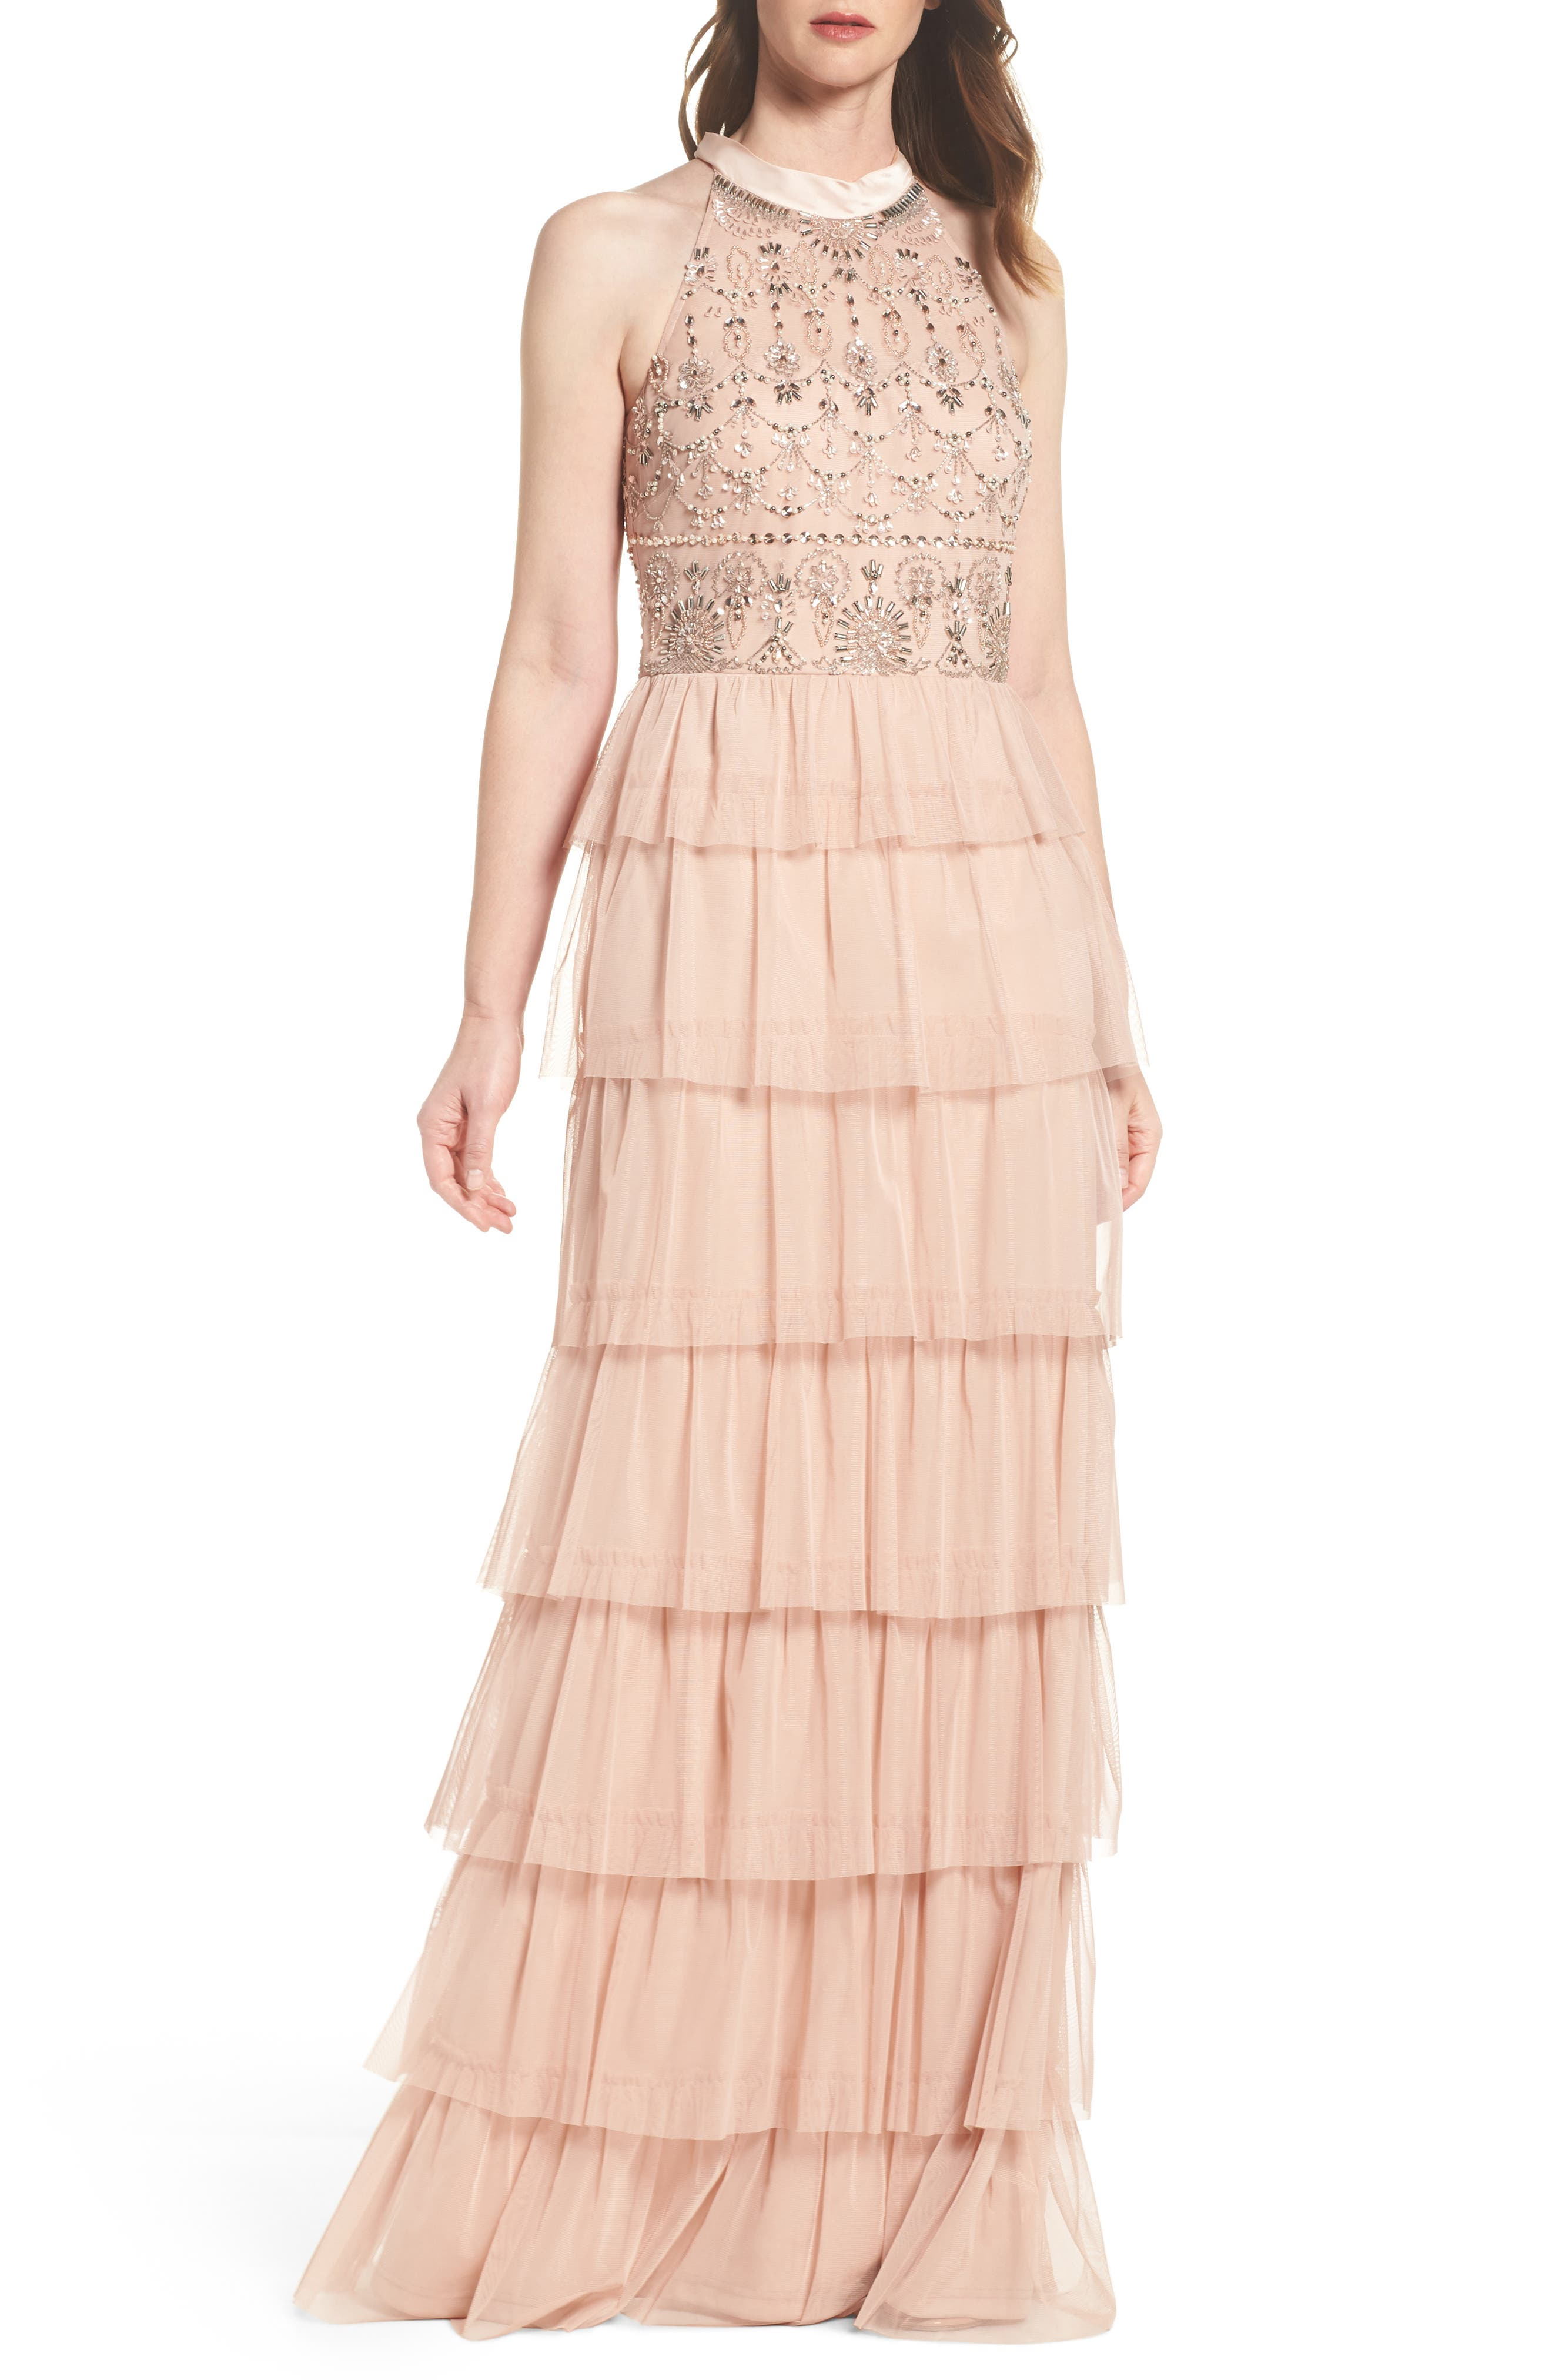 ADRIANNA PAPELL EMBELLISHED TIERED HALTER GOWN, BLUSH | ModeSens